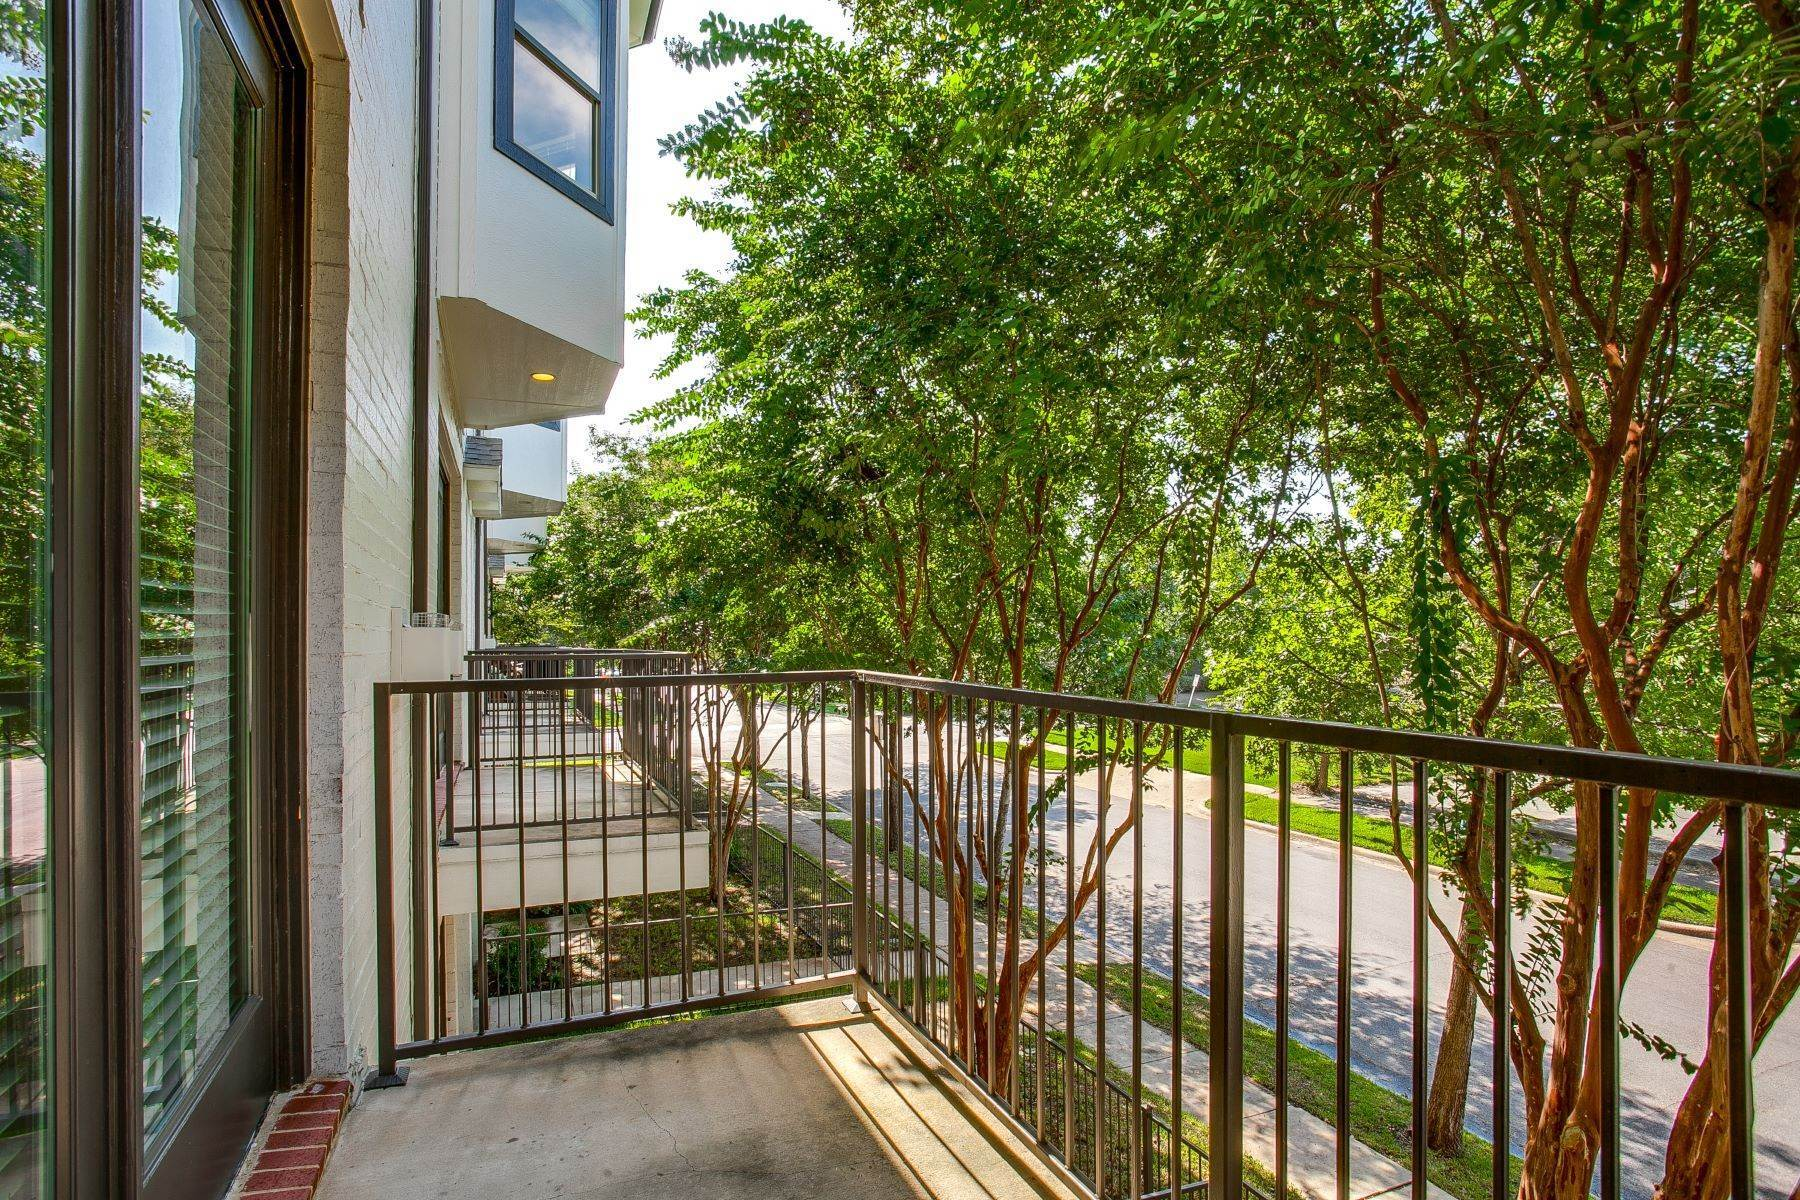 34. Condominiums at Luxurious Townhouse 4502 Holland Avenue, #103 Dallas, Texas 75219 United States